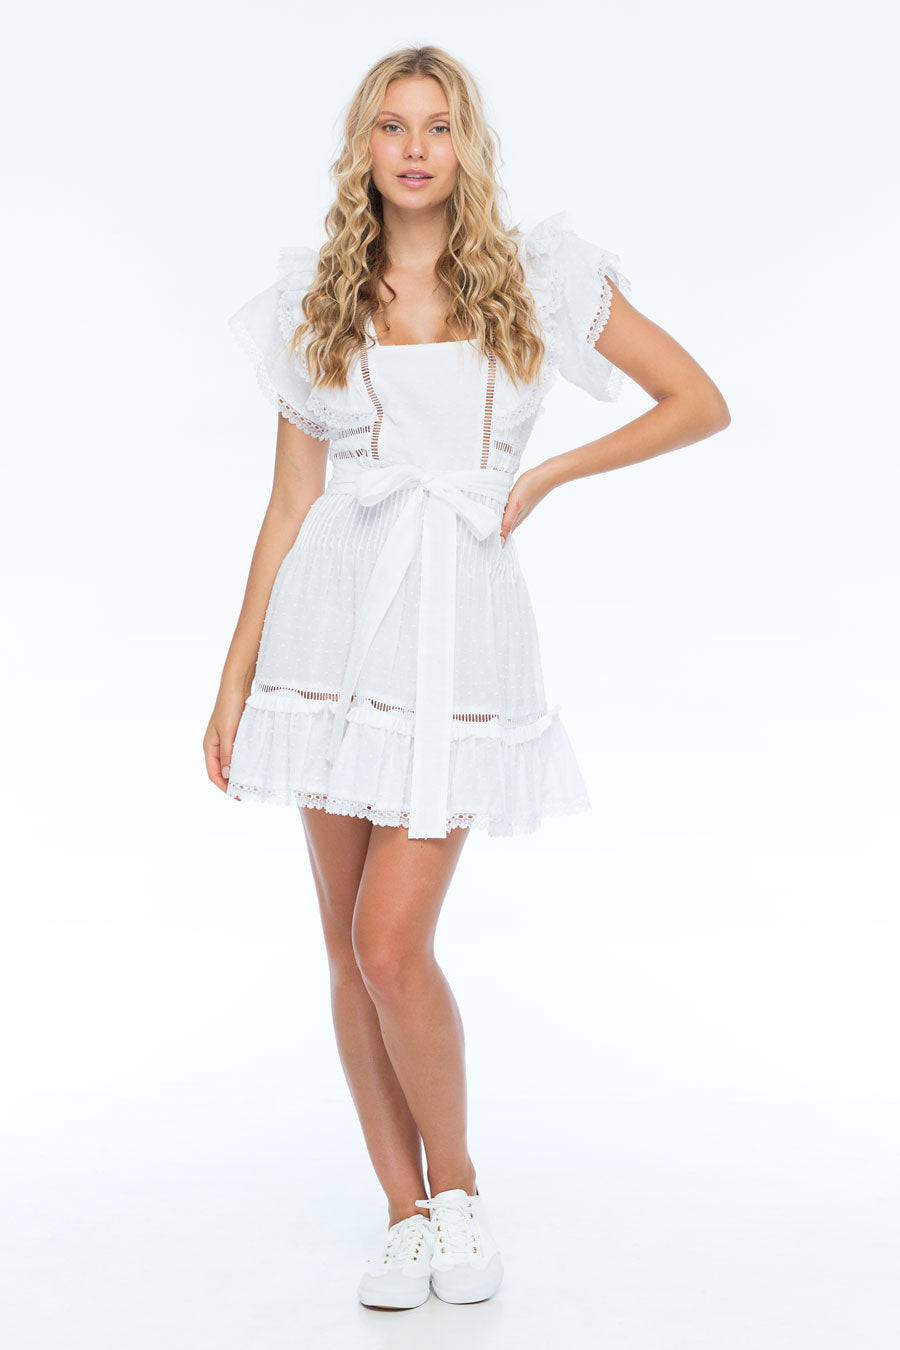 HARPER WOOD WHITE DRESS